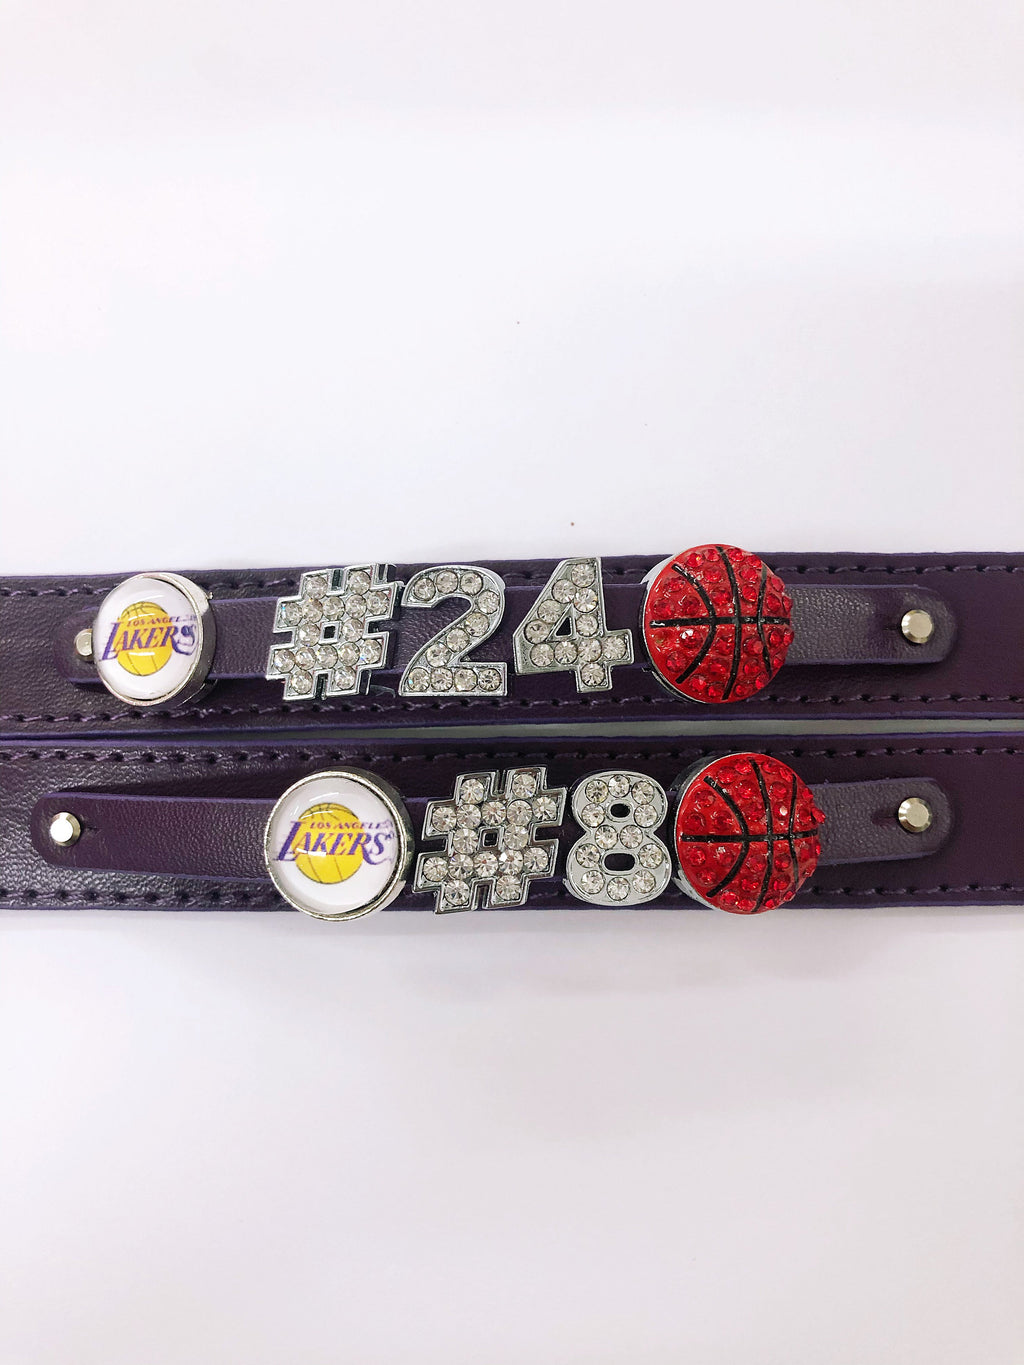 Kobe Bryant Rhinestone Lakers Bracelet - You are a hero